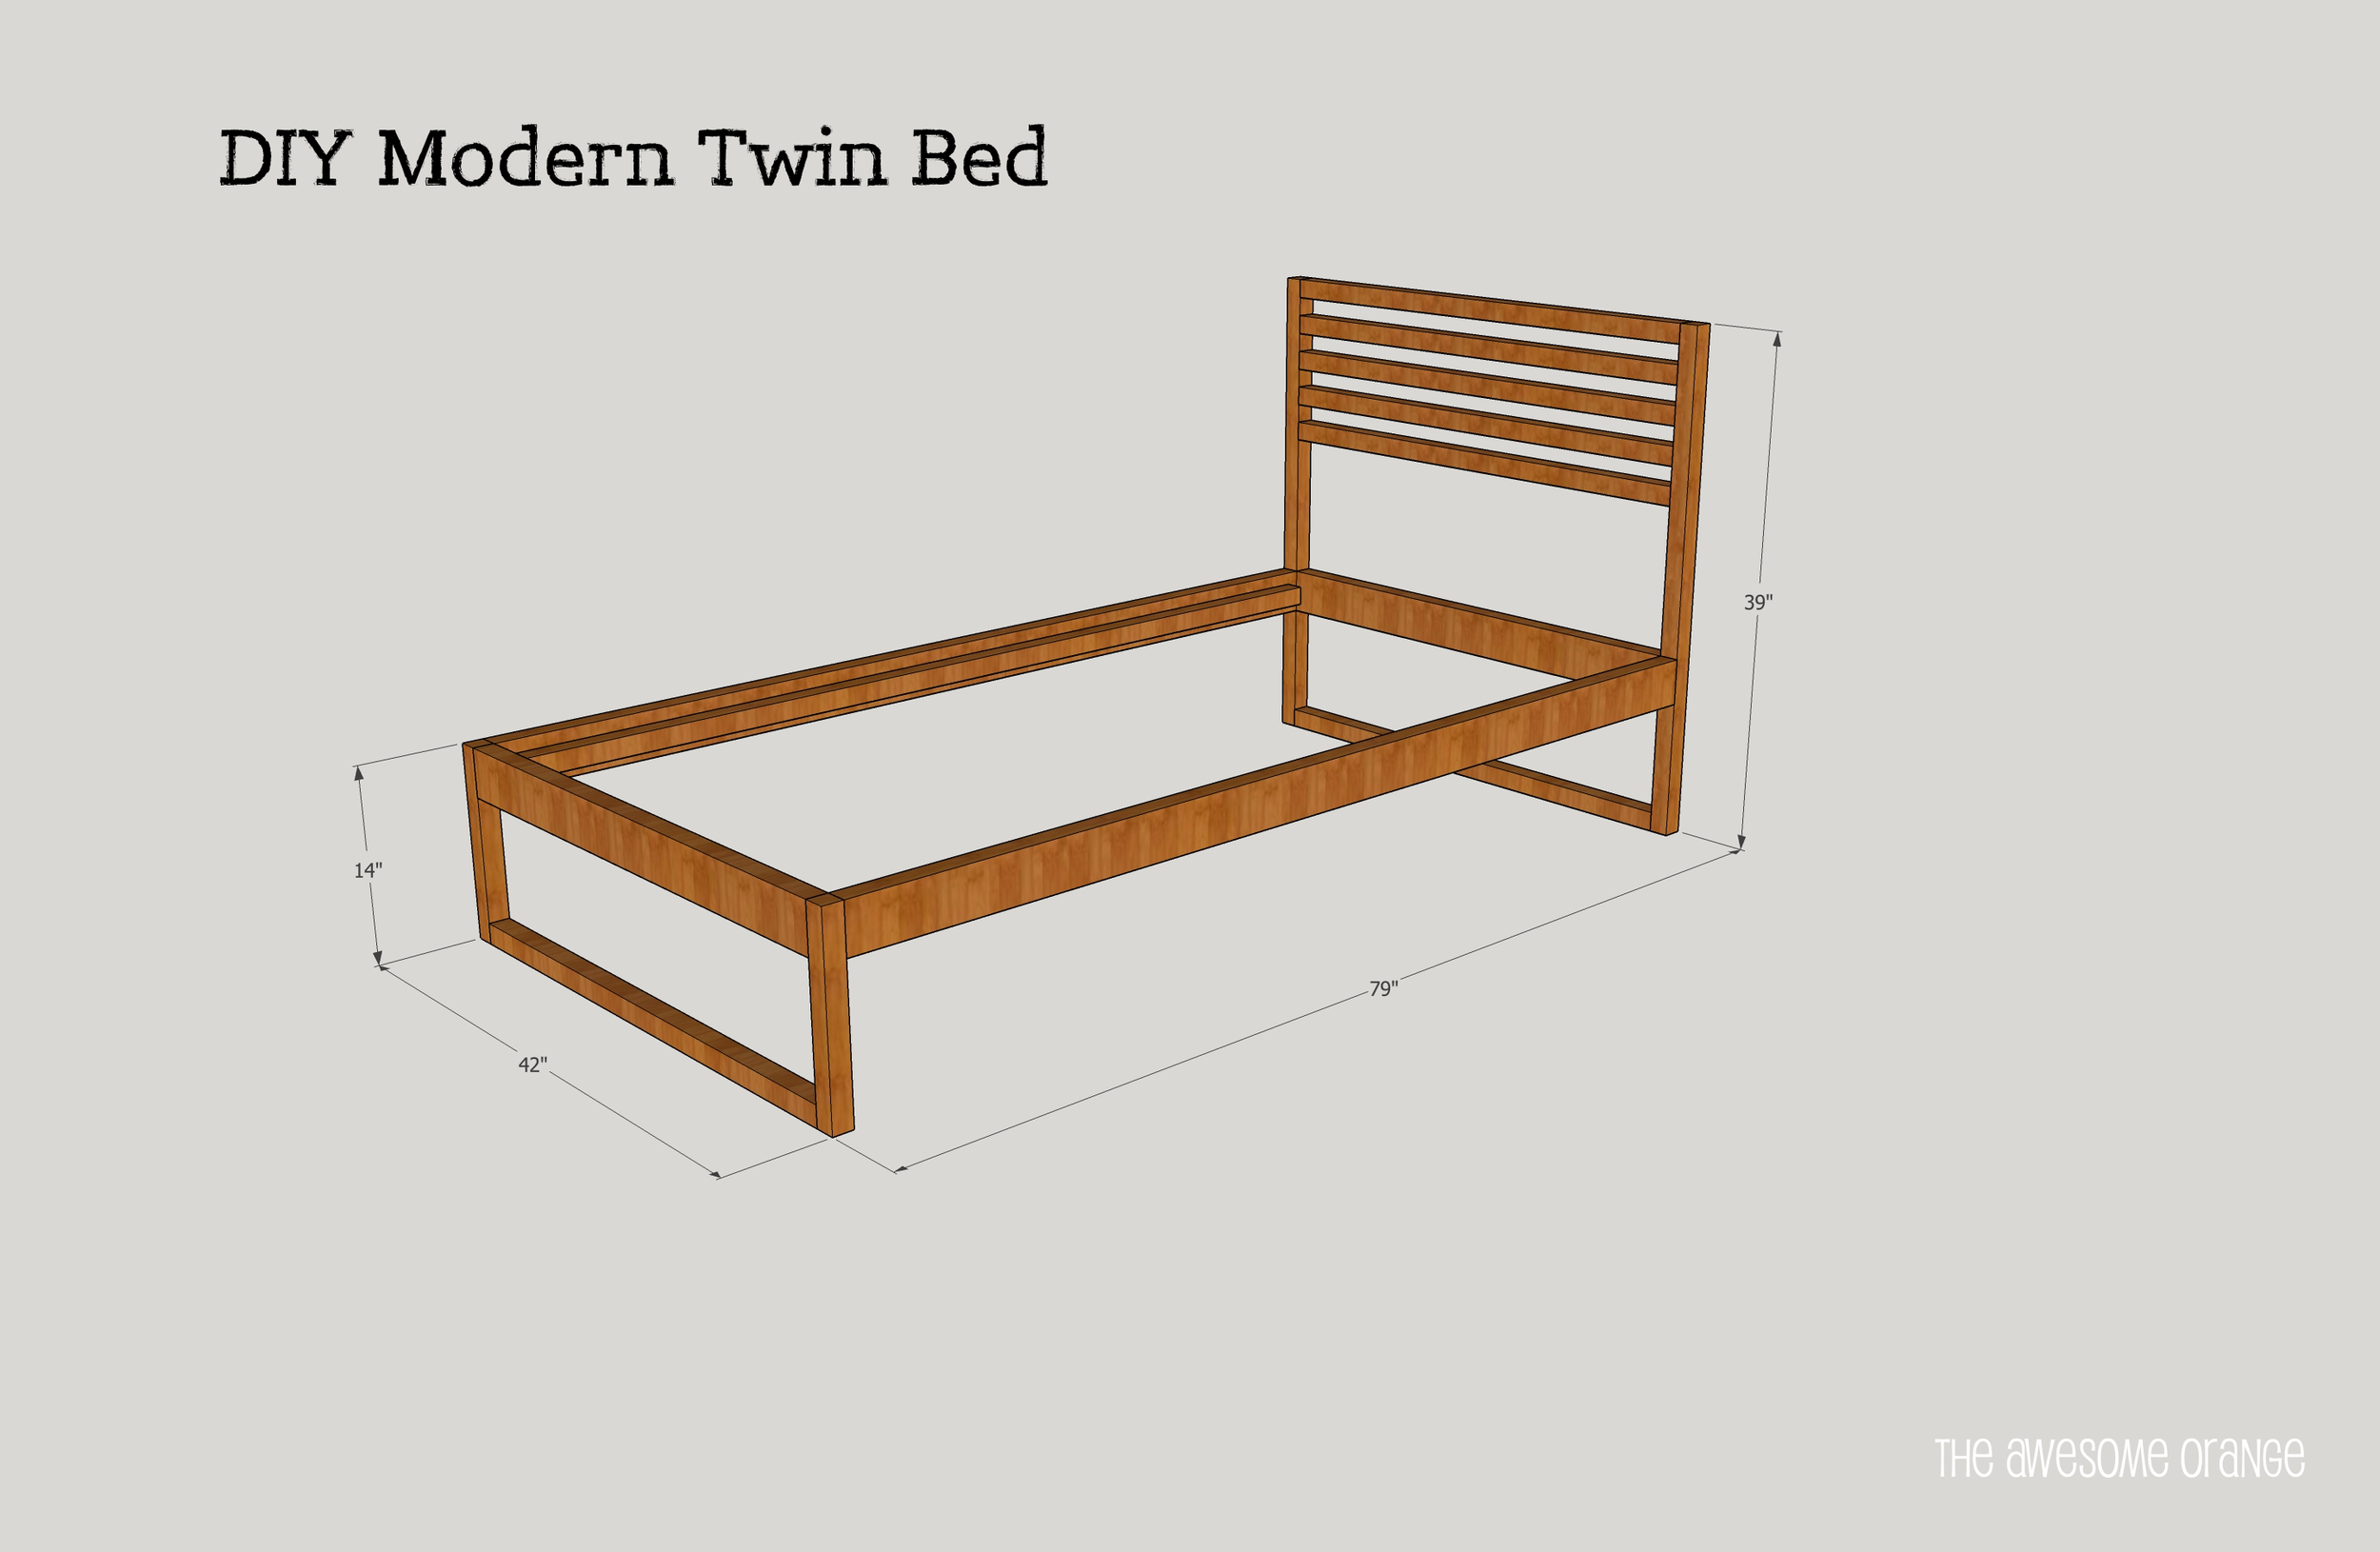 DIY Modern Twin Bed 7.png